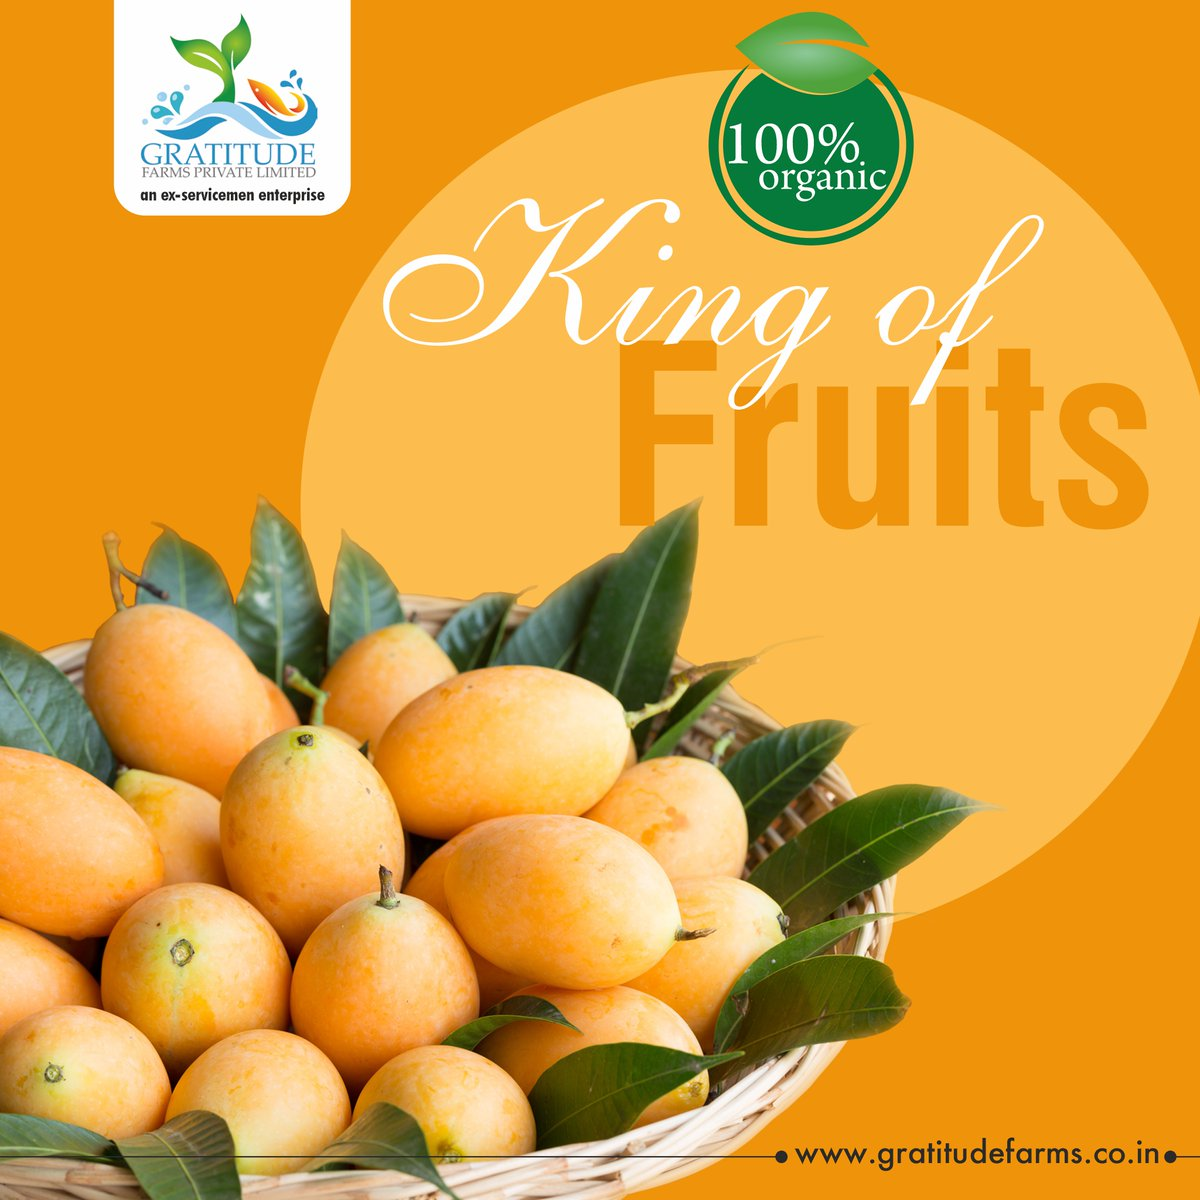 Pick from our range of fresh, organic fruits - they will satisfy those sweet tooth cravings and keep up the health quotient!  Visit @gratitudefarms -   #gratitudefarms #immunityboost #health #immunity #organic #organicfood #safety #stayhomestaysafe #fruits